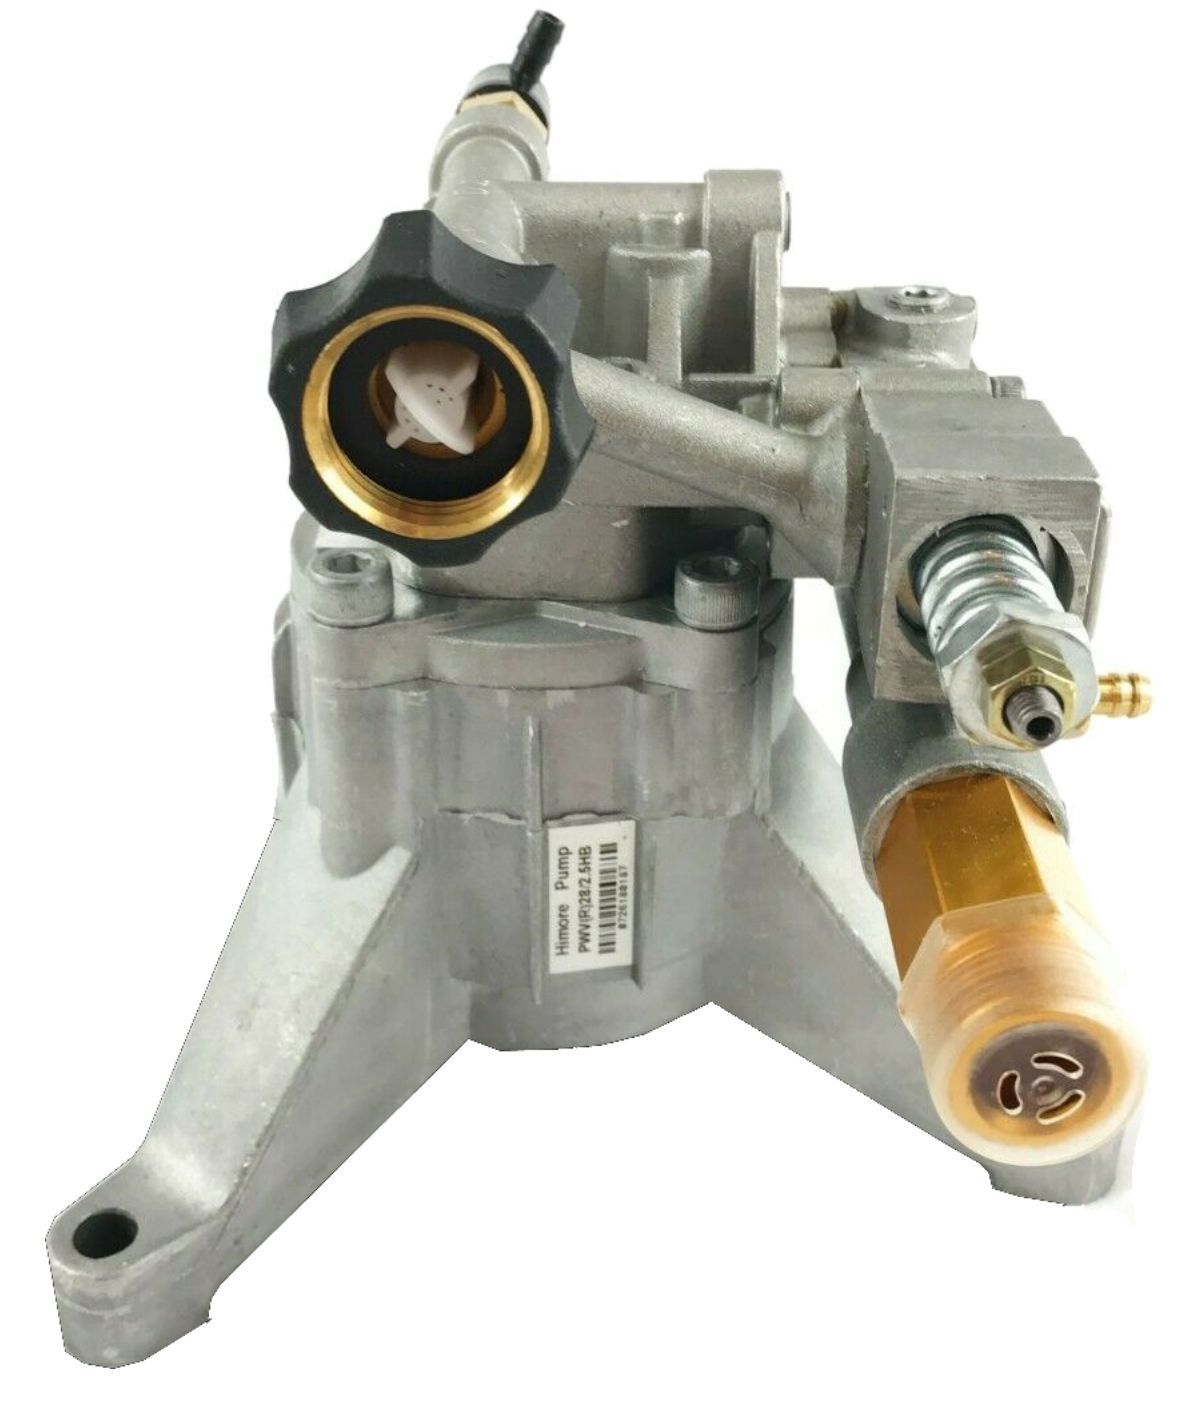 2700 PSI PRESSURE WASHER WATER PUMP Campbell Hausfeld PW205203AI - AE-Power